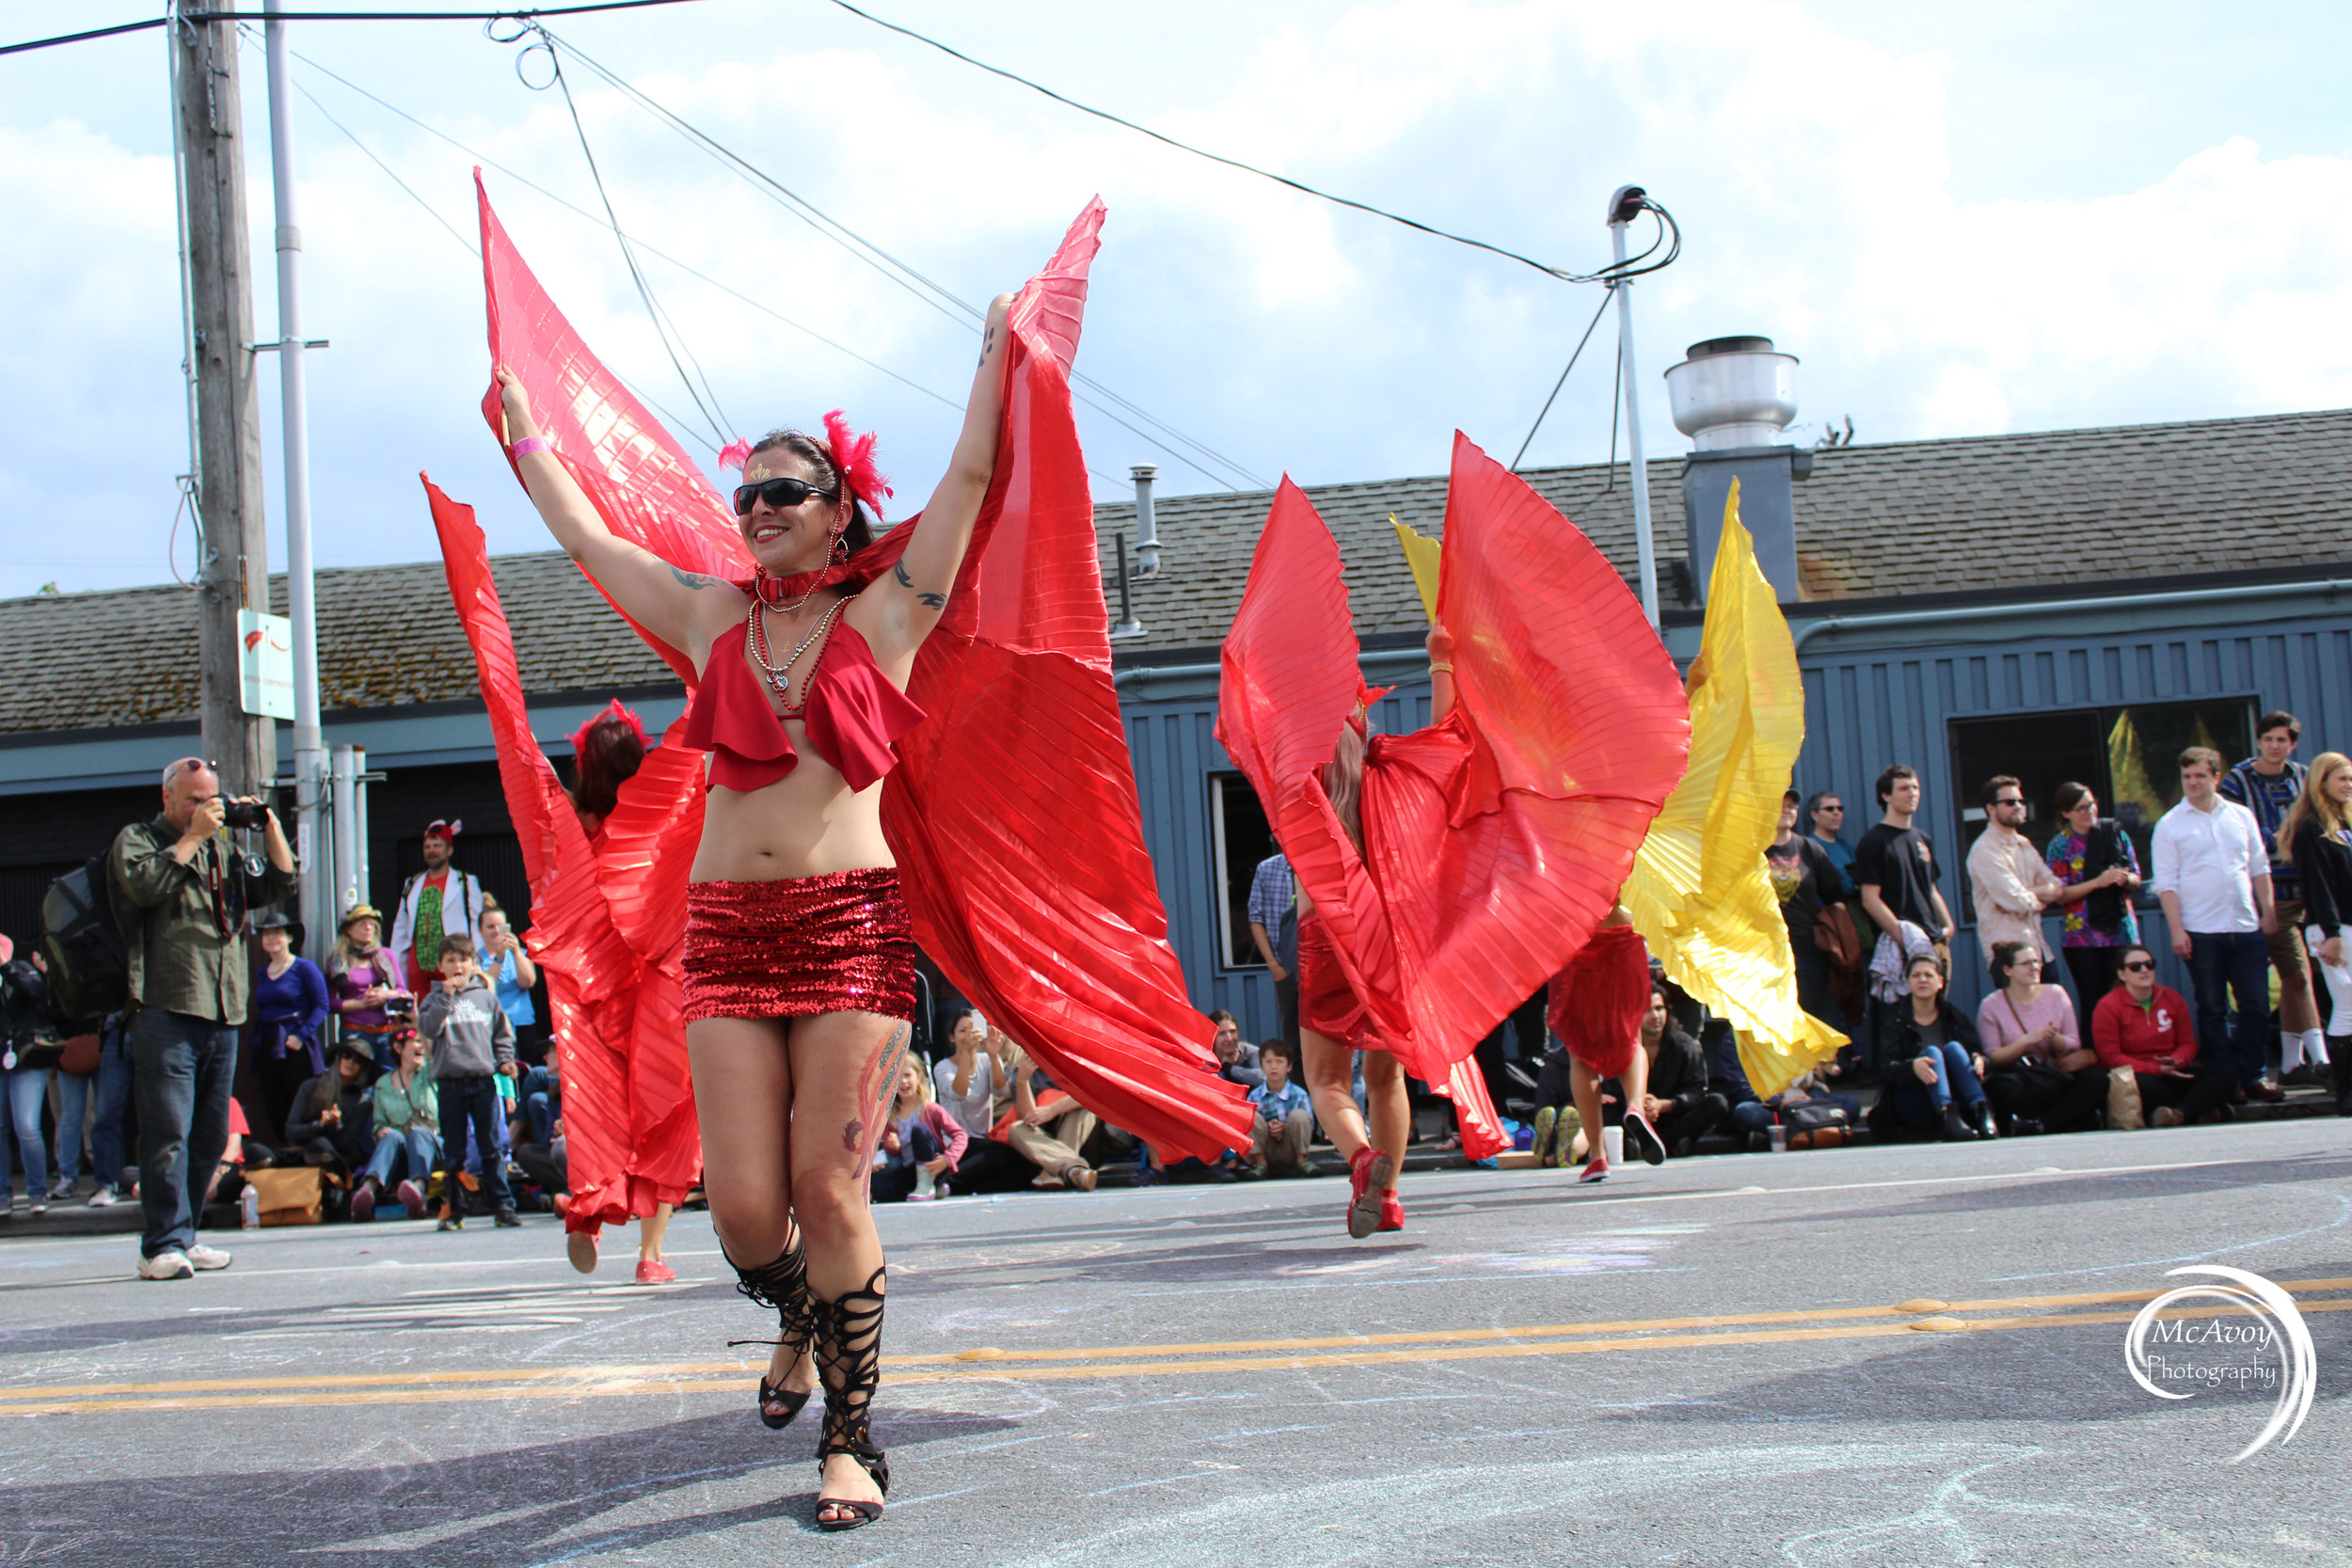 Local dance group Blanco Pacifico shows off their traditional Spanish dances and color.